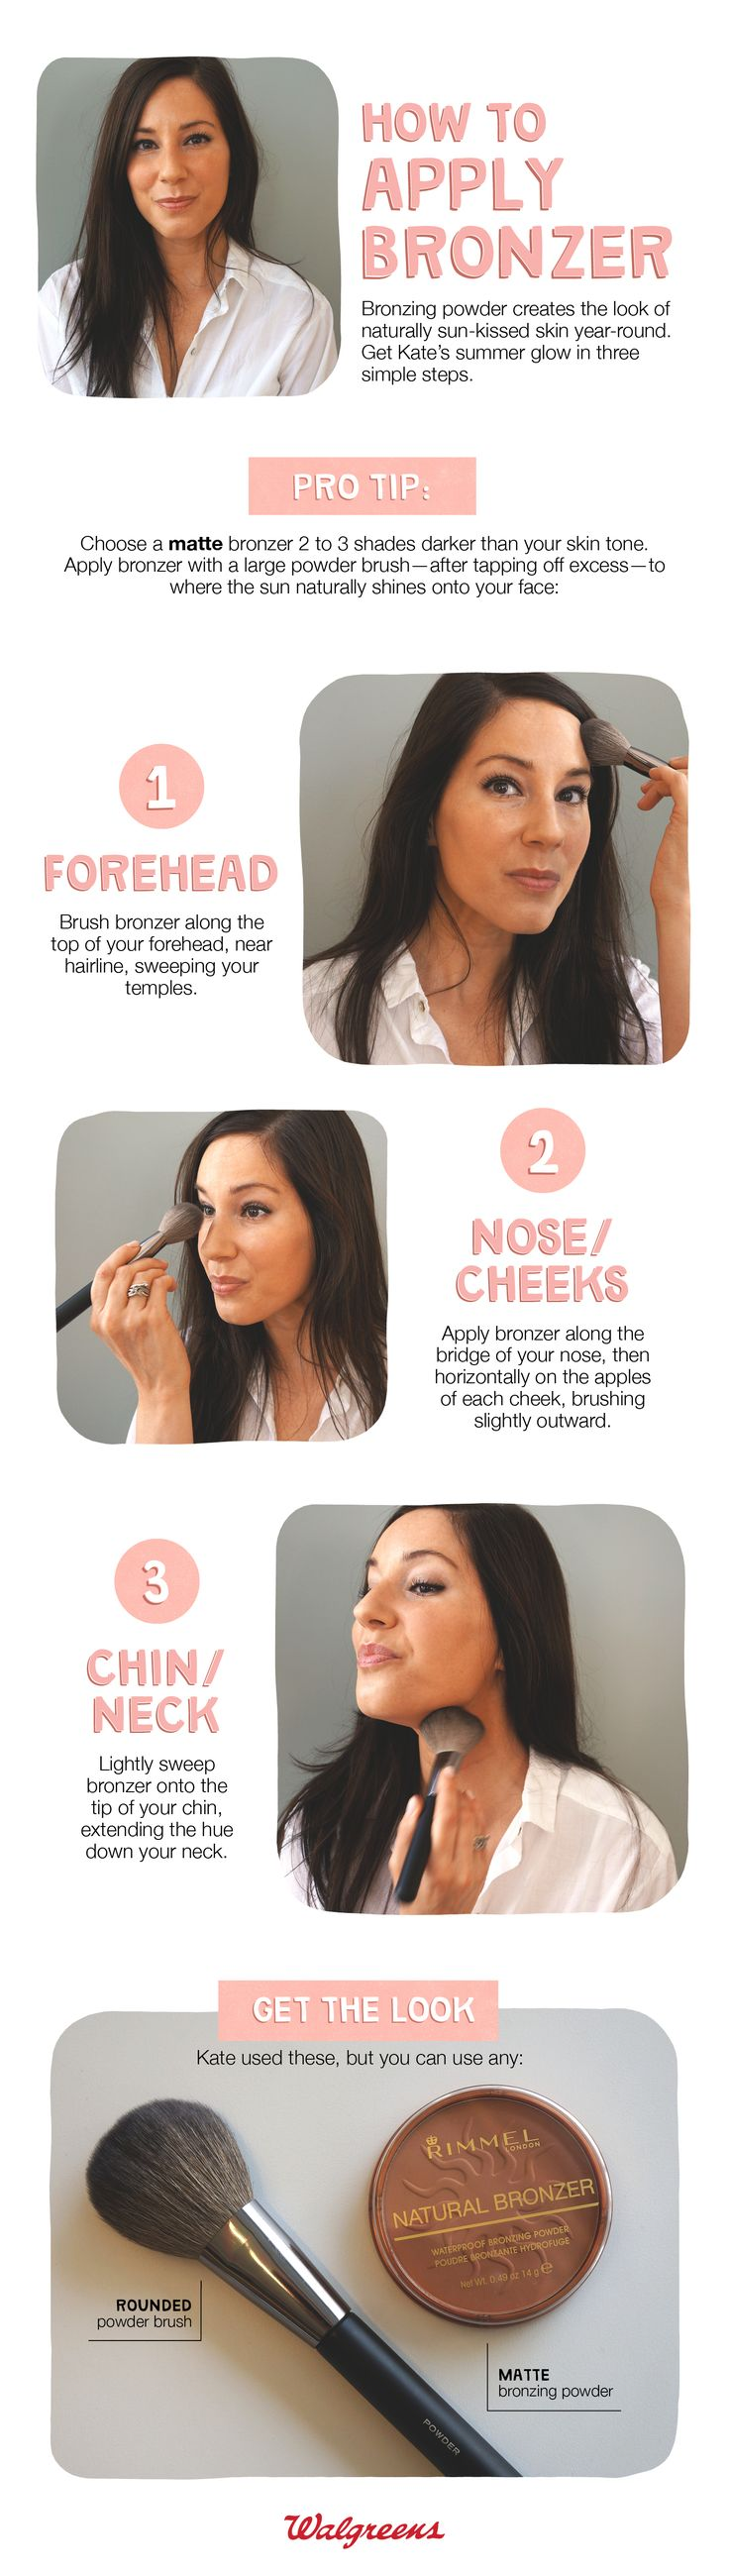 How to apply bronzer.